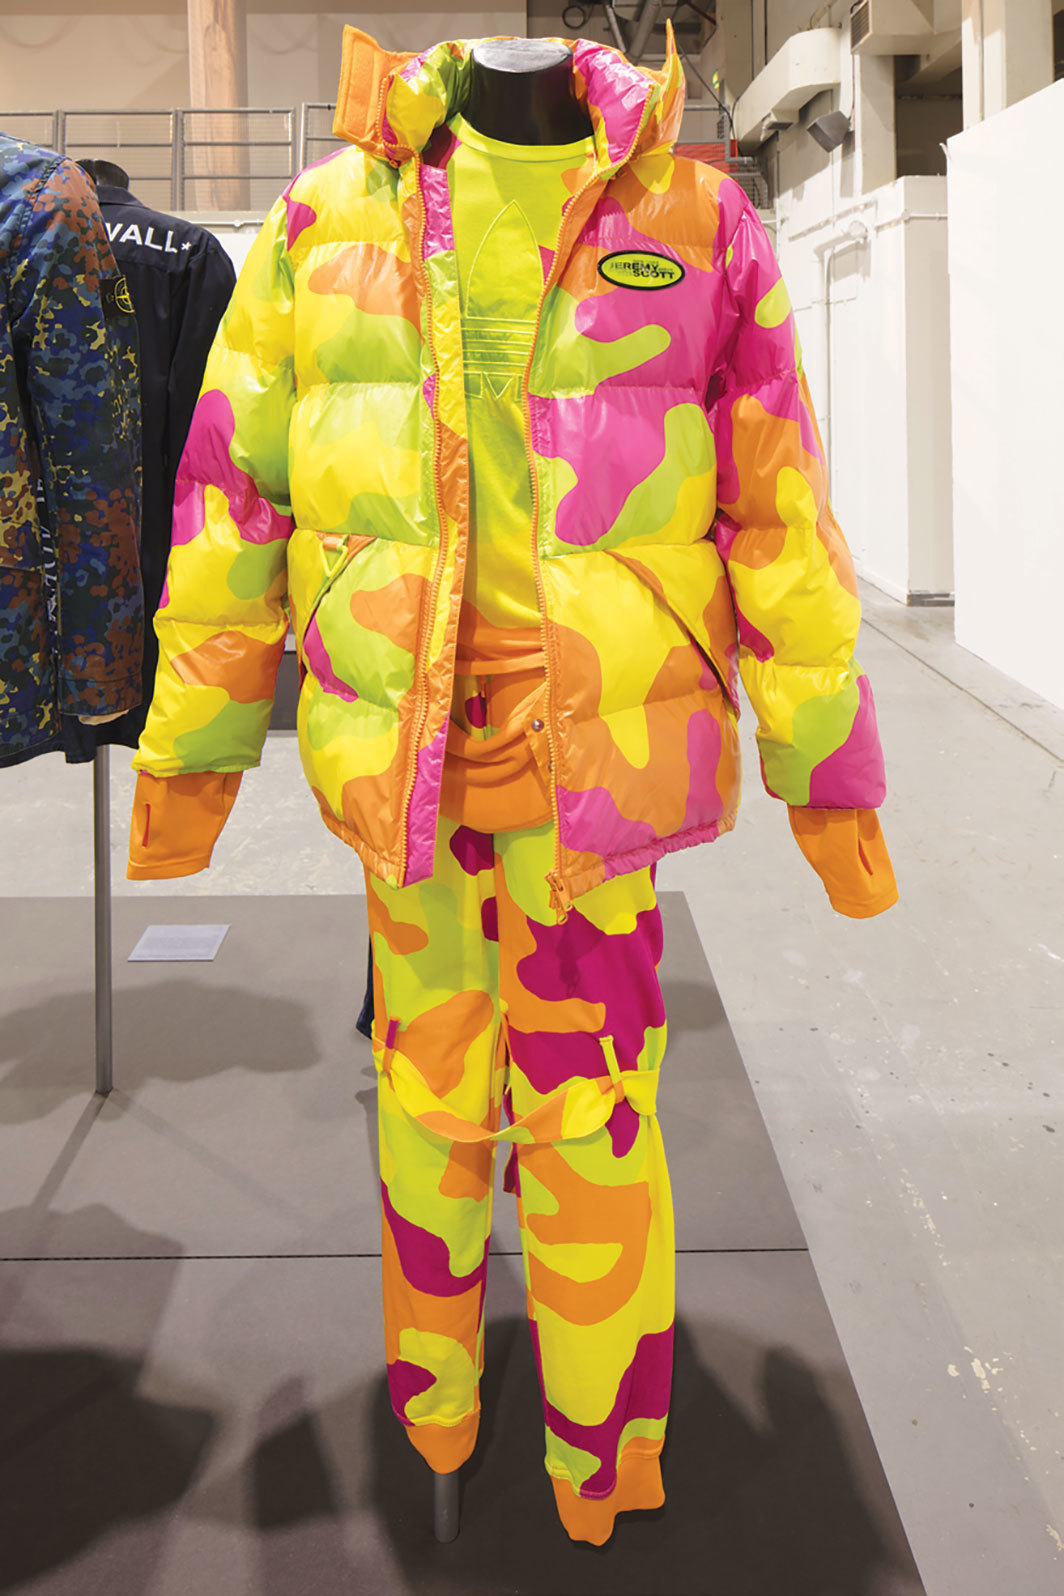 Look from Adidas Originals × Jeremy Scott Fall/Winter 2013 collection. Installation view, University of Westminster, London, 2019.